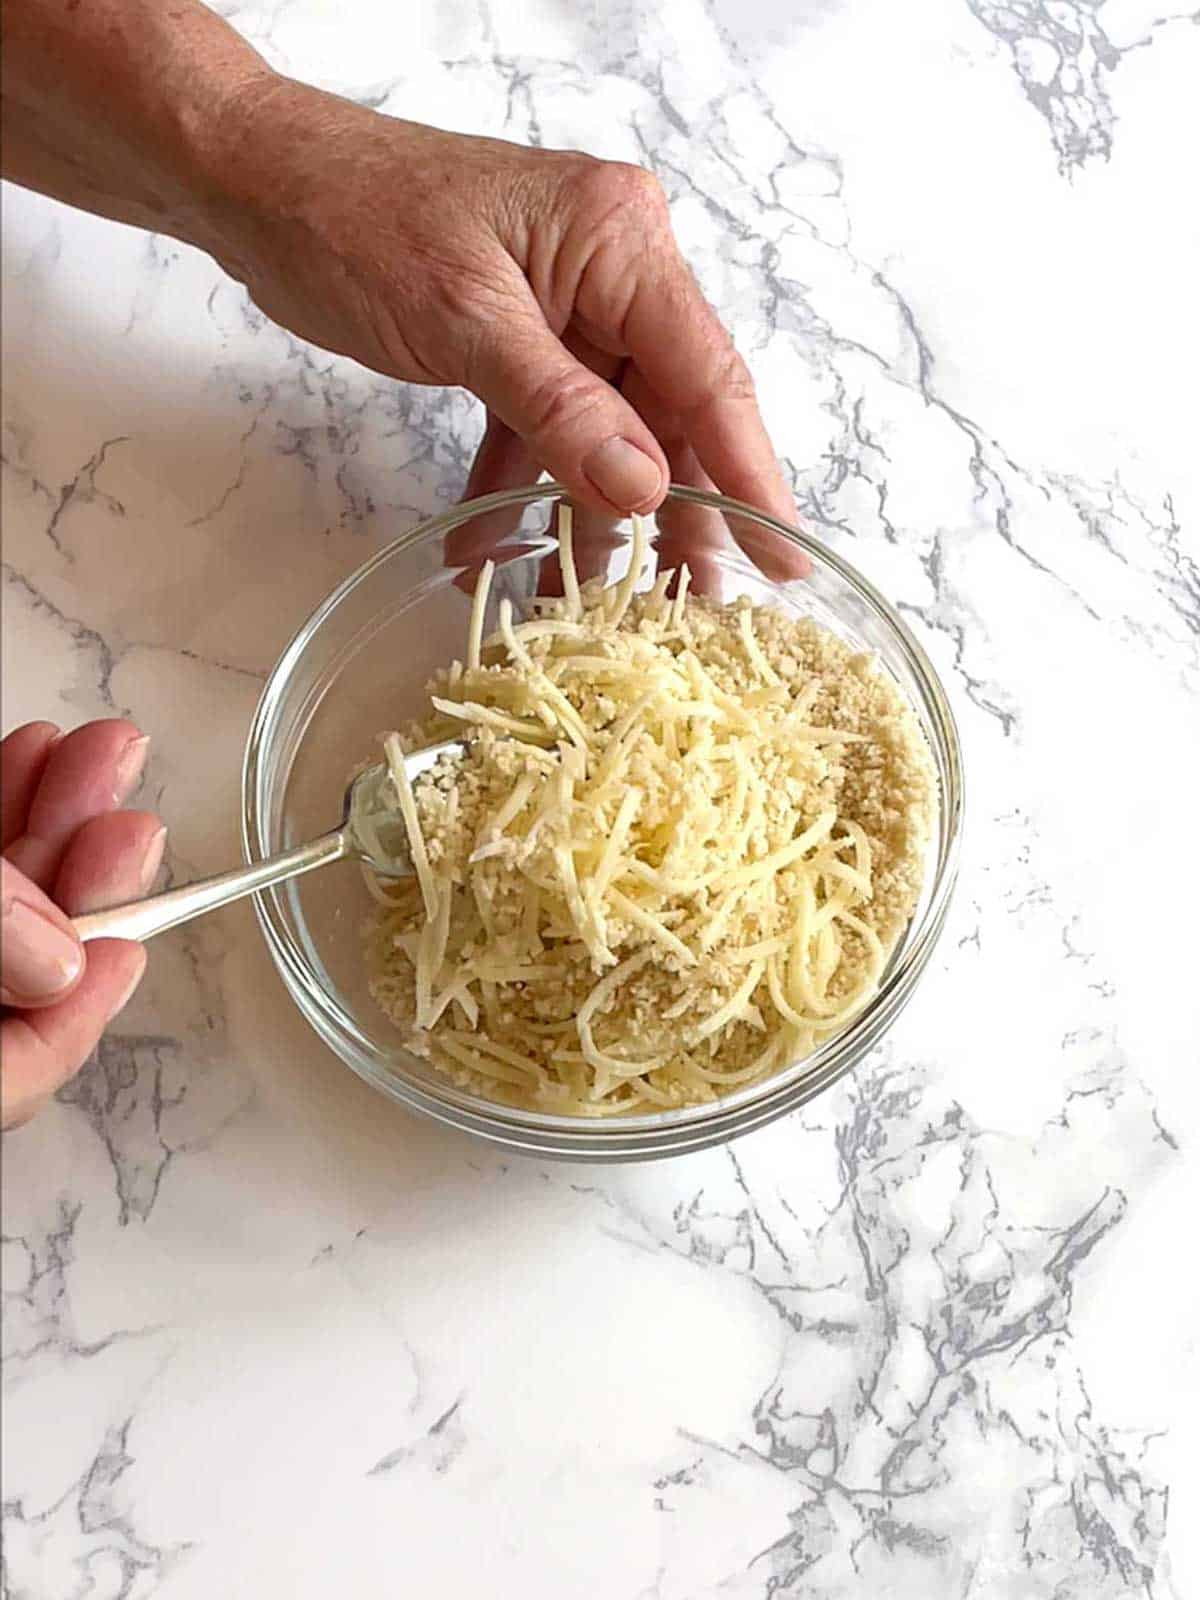 Mixing cheese and panko breadcrumbs